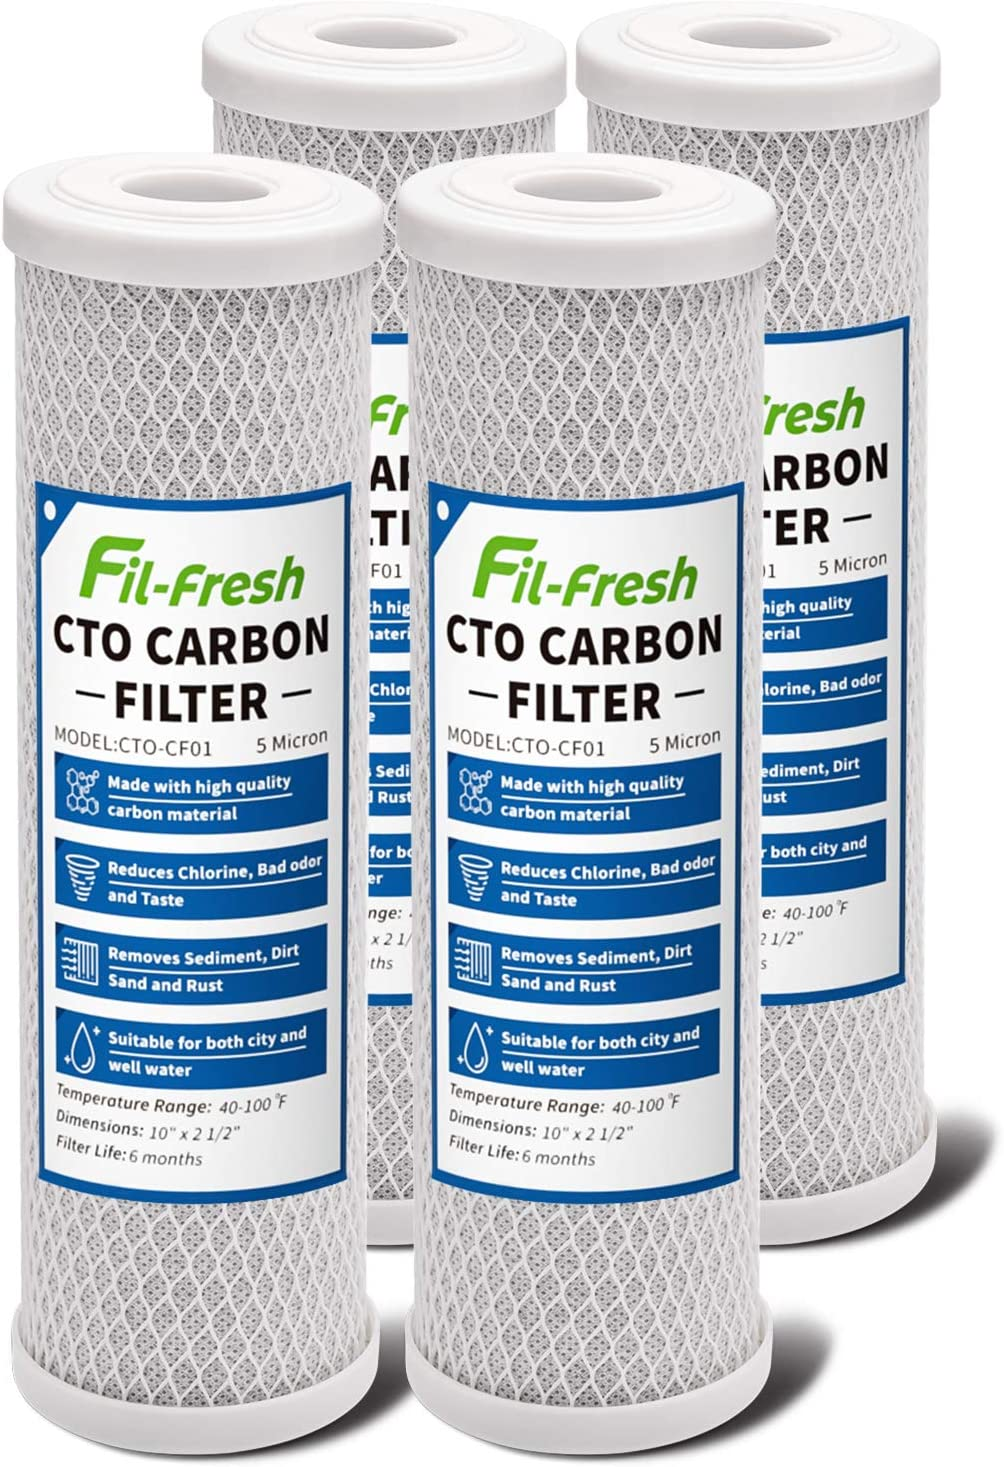 """Fil-fresh 5 Micron 10"""" x 2.5"""" Whole House CTO Activated Carbon Block Water Filter Replacement Cartridge Fits Standard Under Sink and RO Water Filtration System(4 Pack)"""